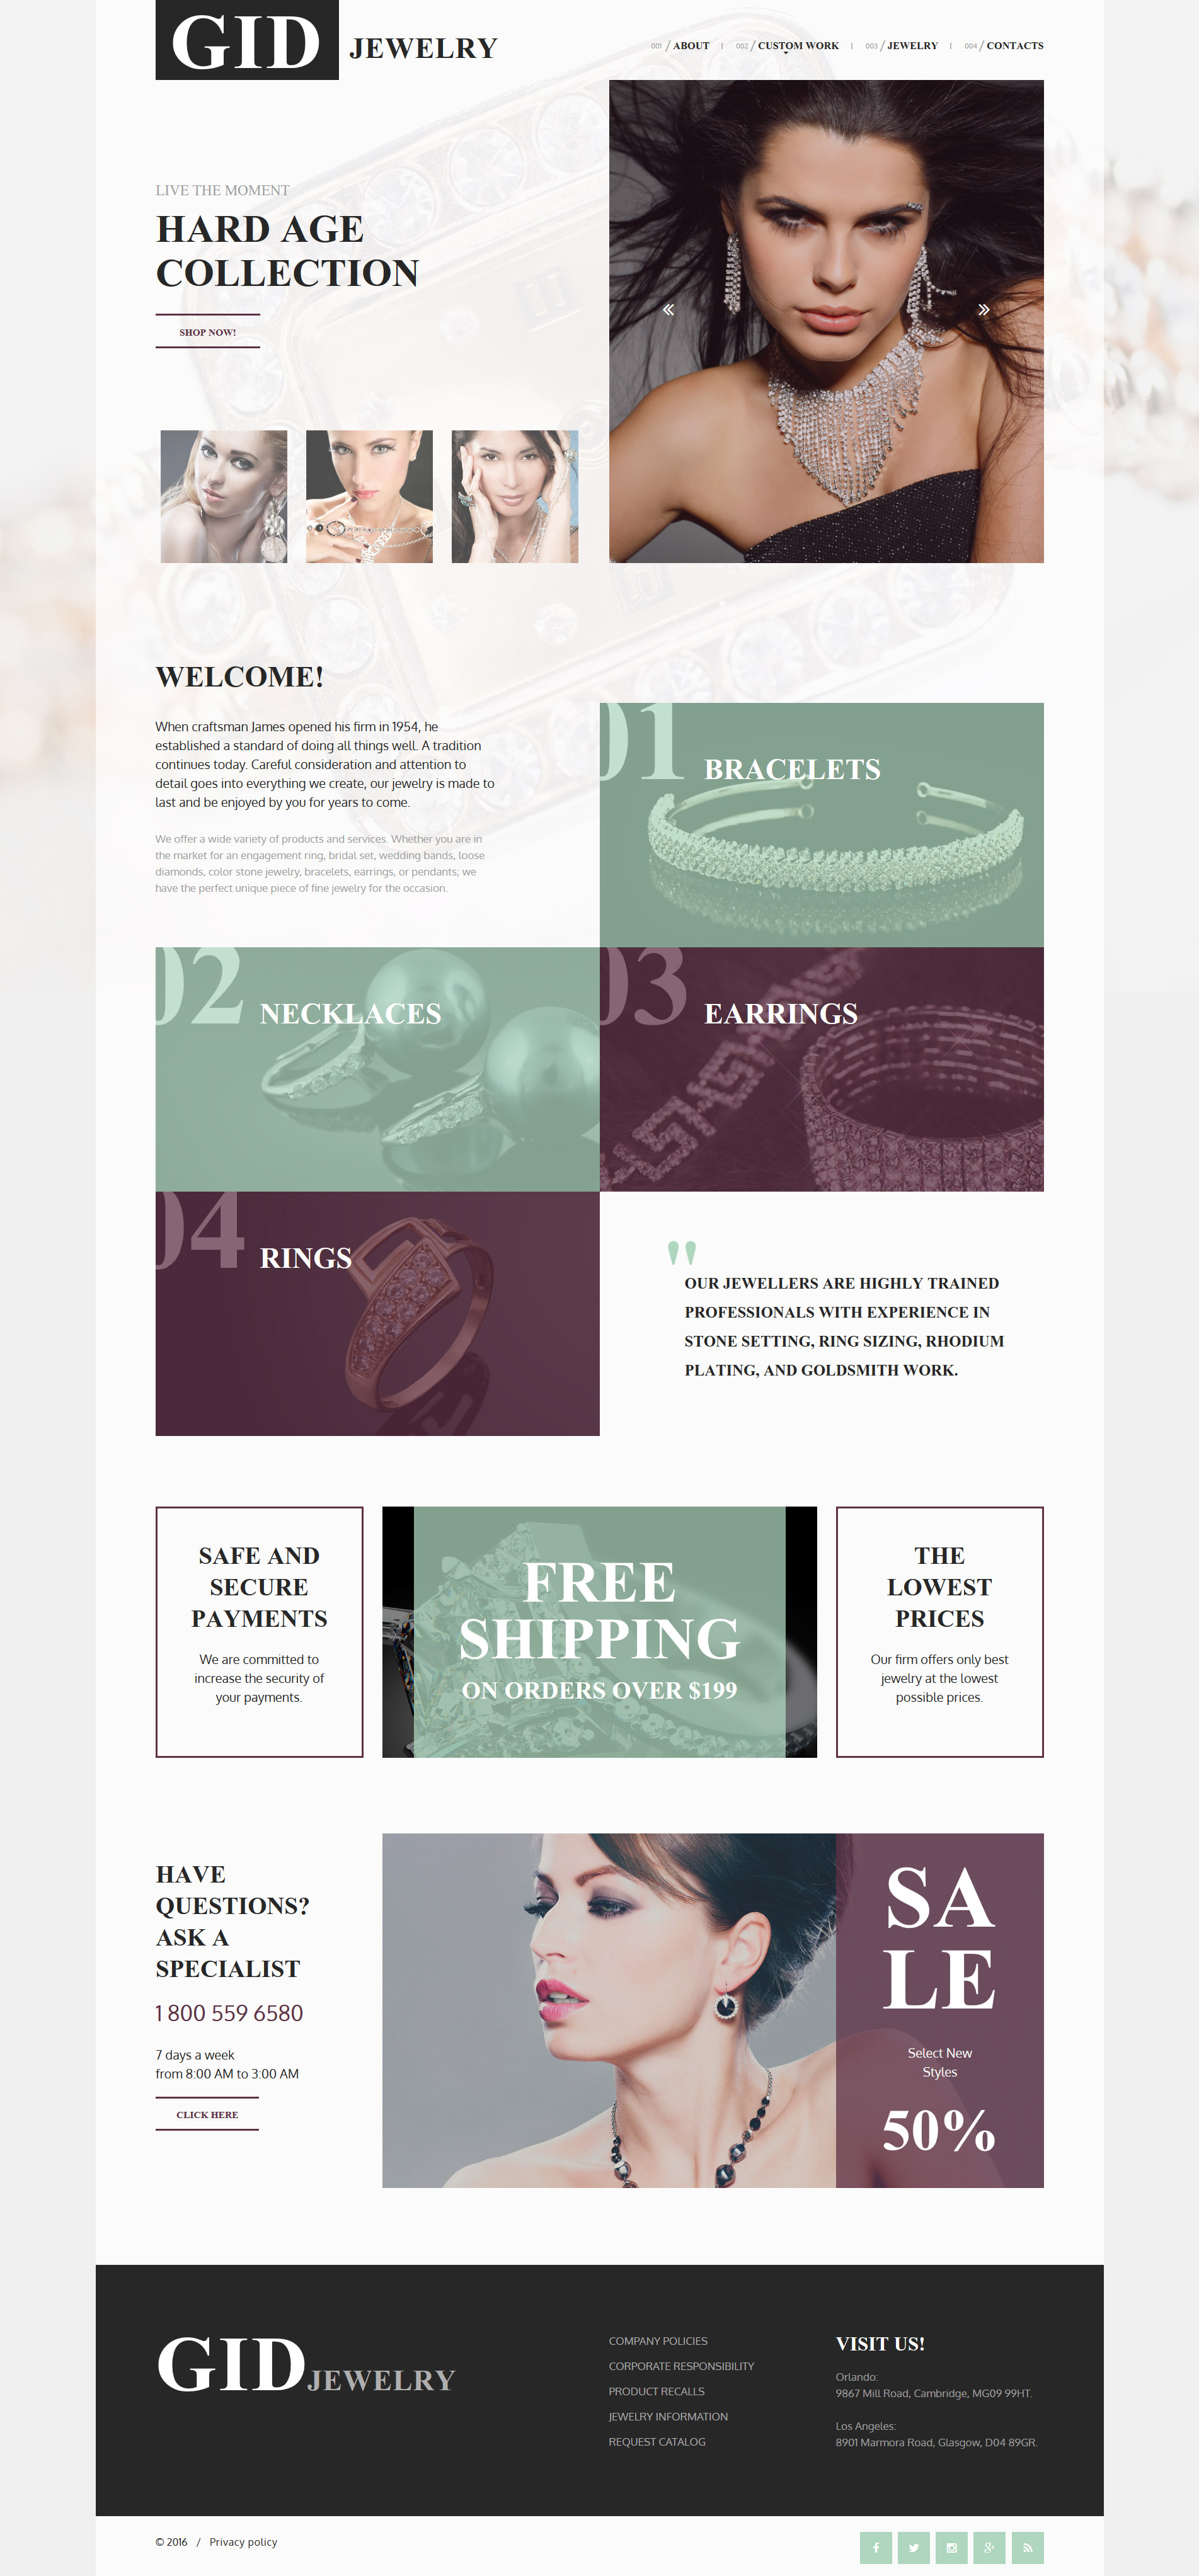 Gid Jewelry Website Template - screenshot